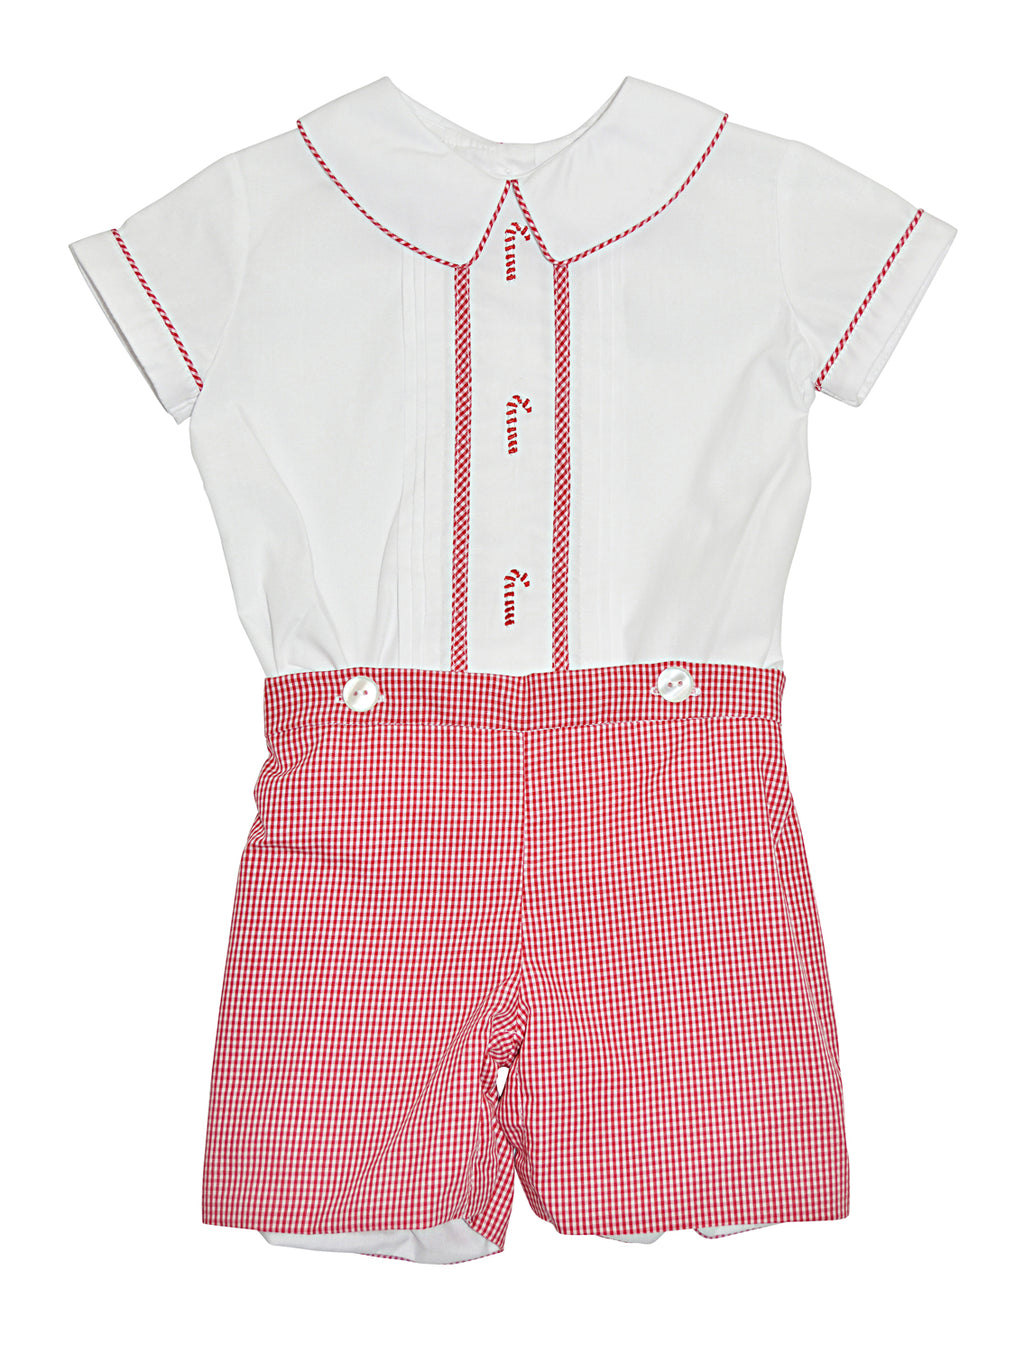 Candy Cane Boy's Short set - Little Threads Inc. Children's Clothing